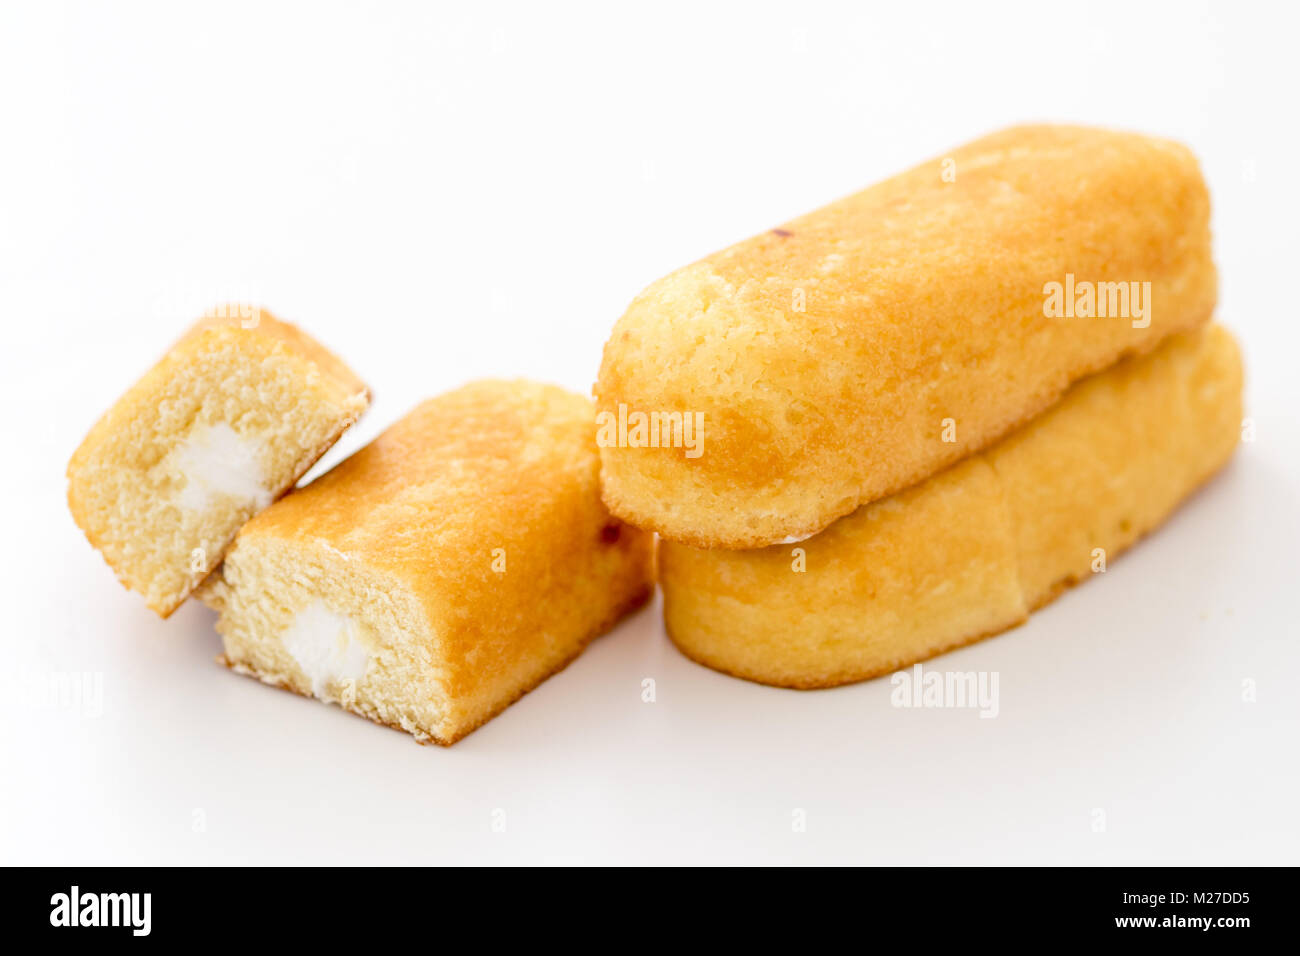 Twinkies (Twinkie) are a renowned American snack cake. - Stock Image